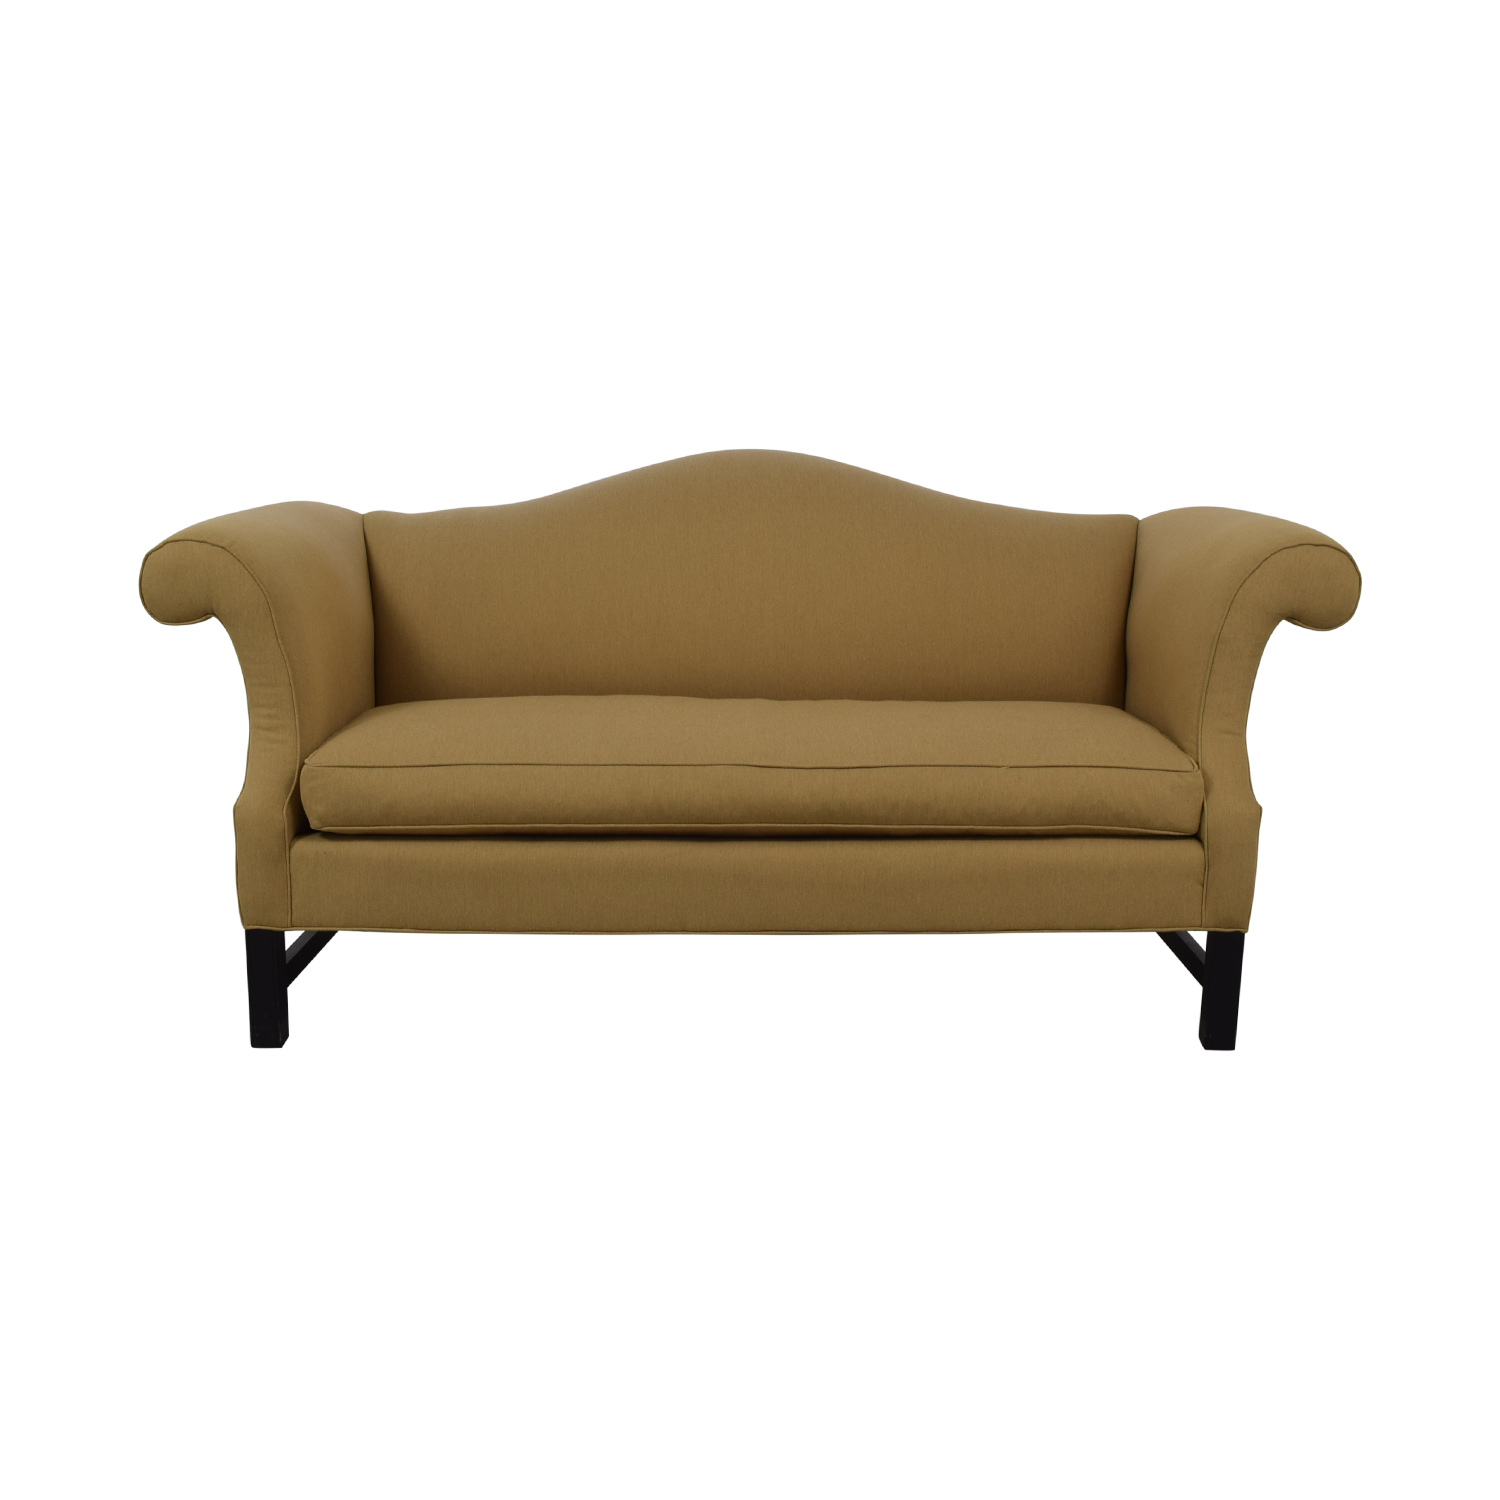 Mitchell Gold + Bob Williams Mitchell Gold + Bob Williams Classic Roll Arm Sofa dimensions